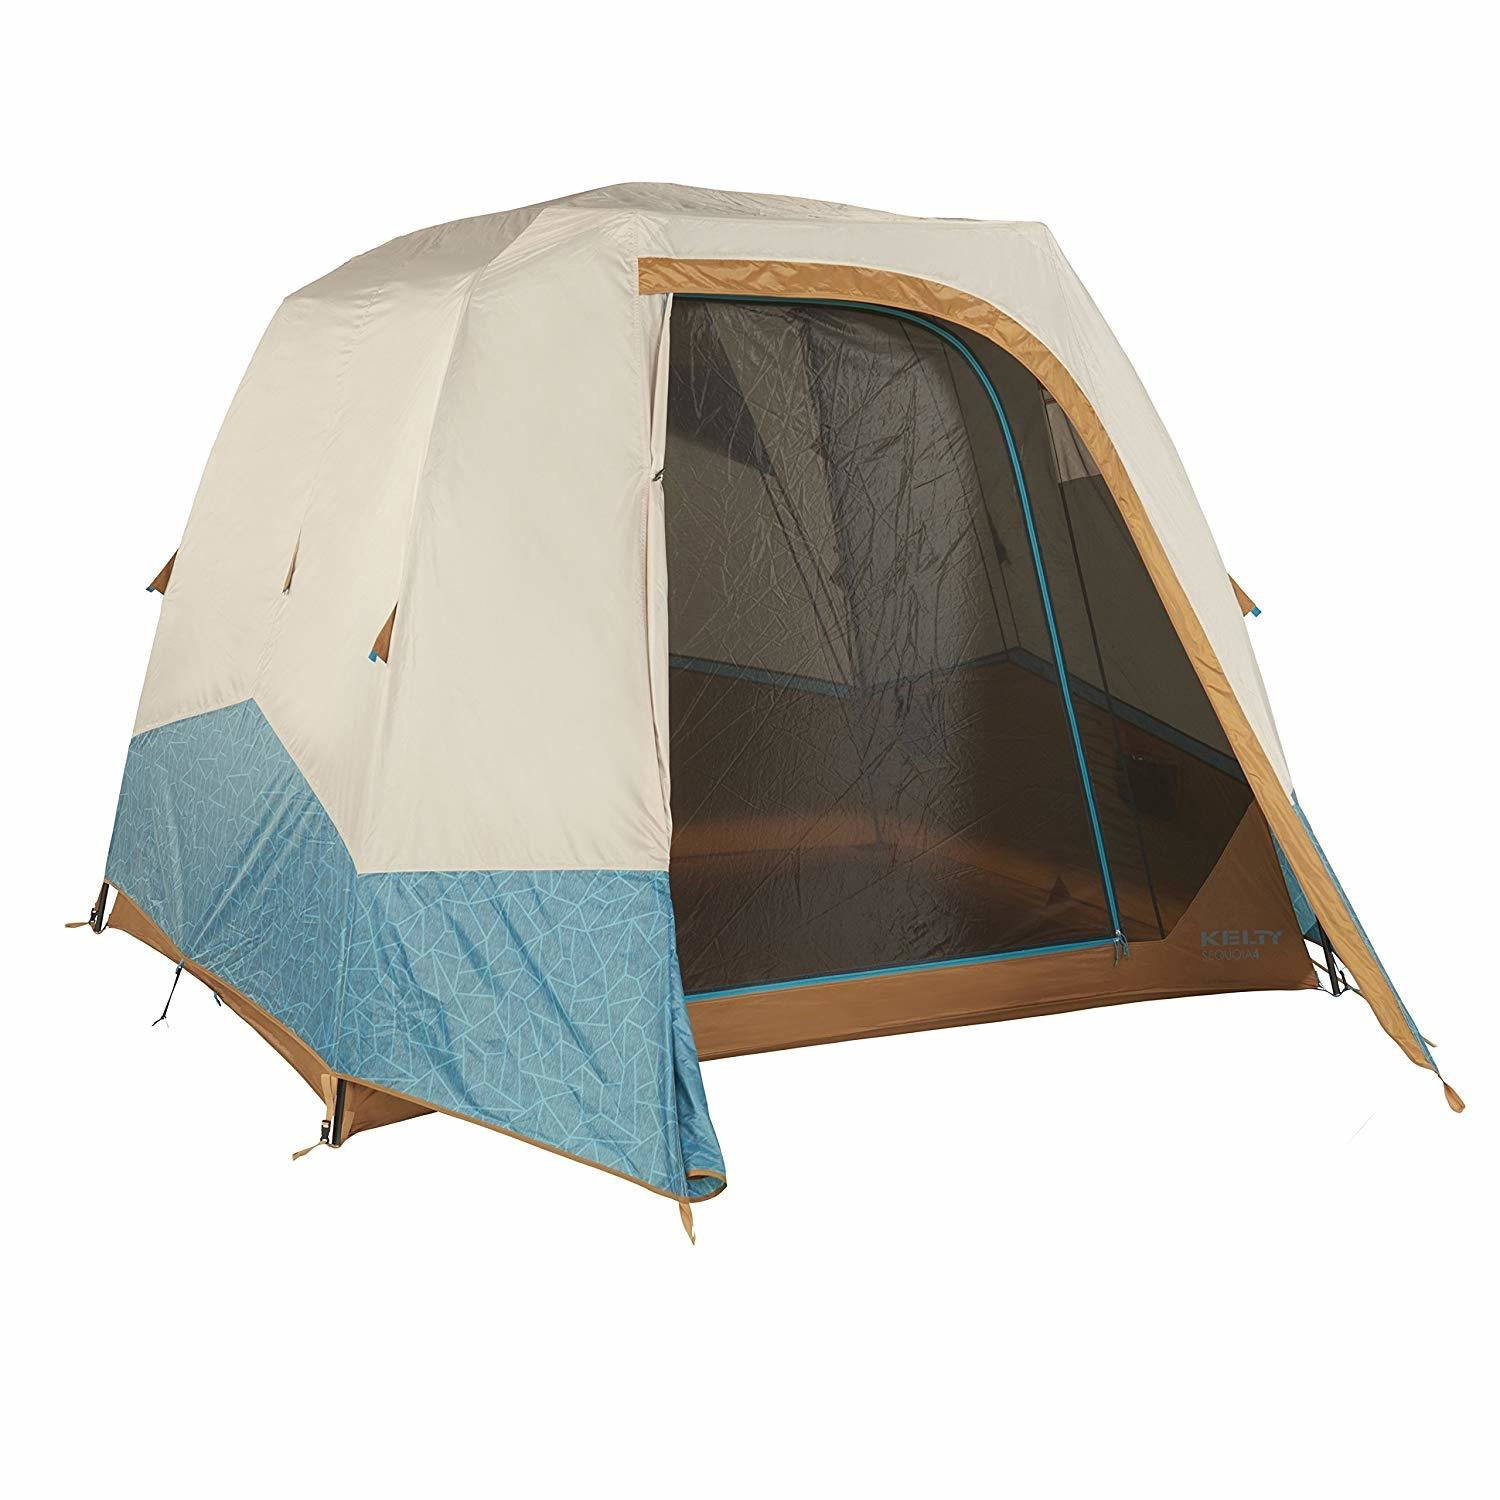 "Kelty Sequoia 4 Person Family Tent - 78"" Interior Height!!!"